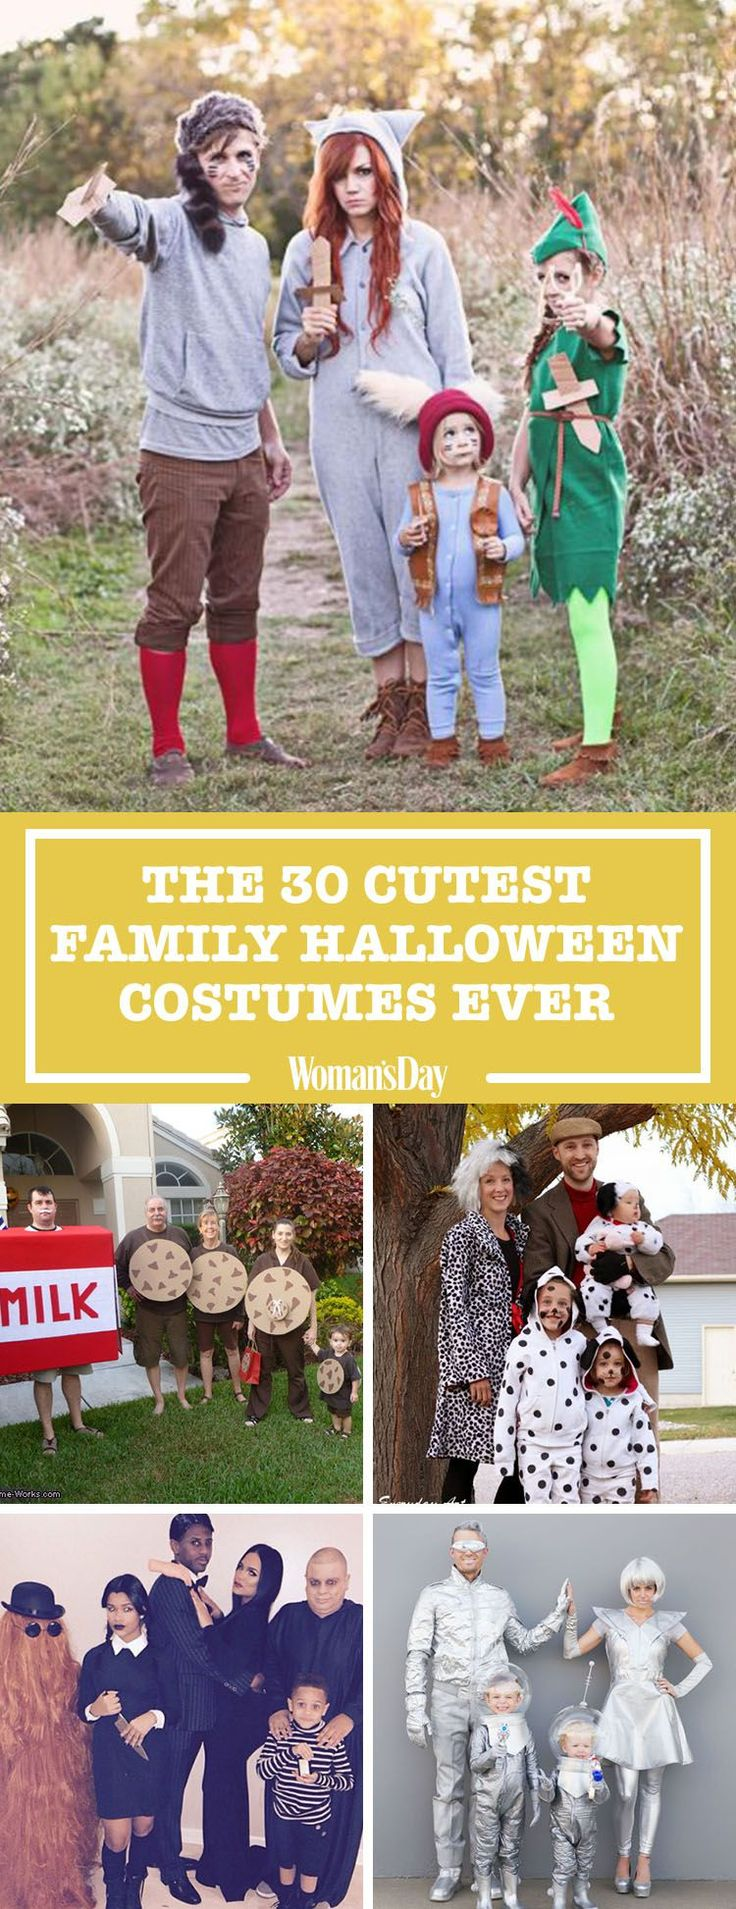 40 Best Family Halloween Costumes 2017 - Cute Ideas for Themed Costumes for Families